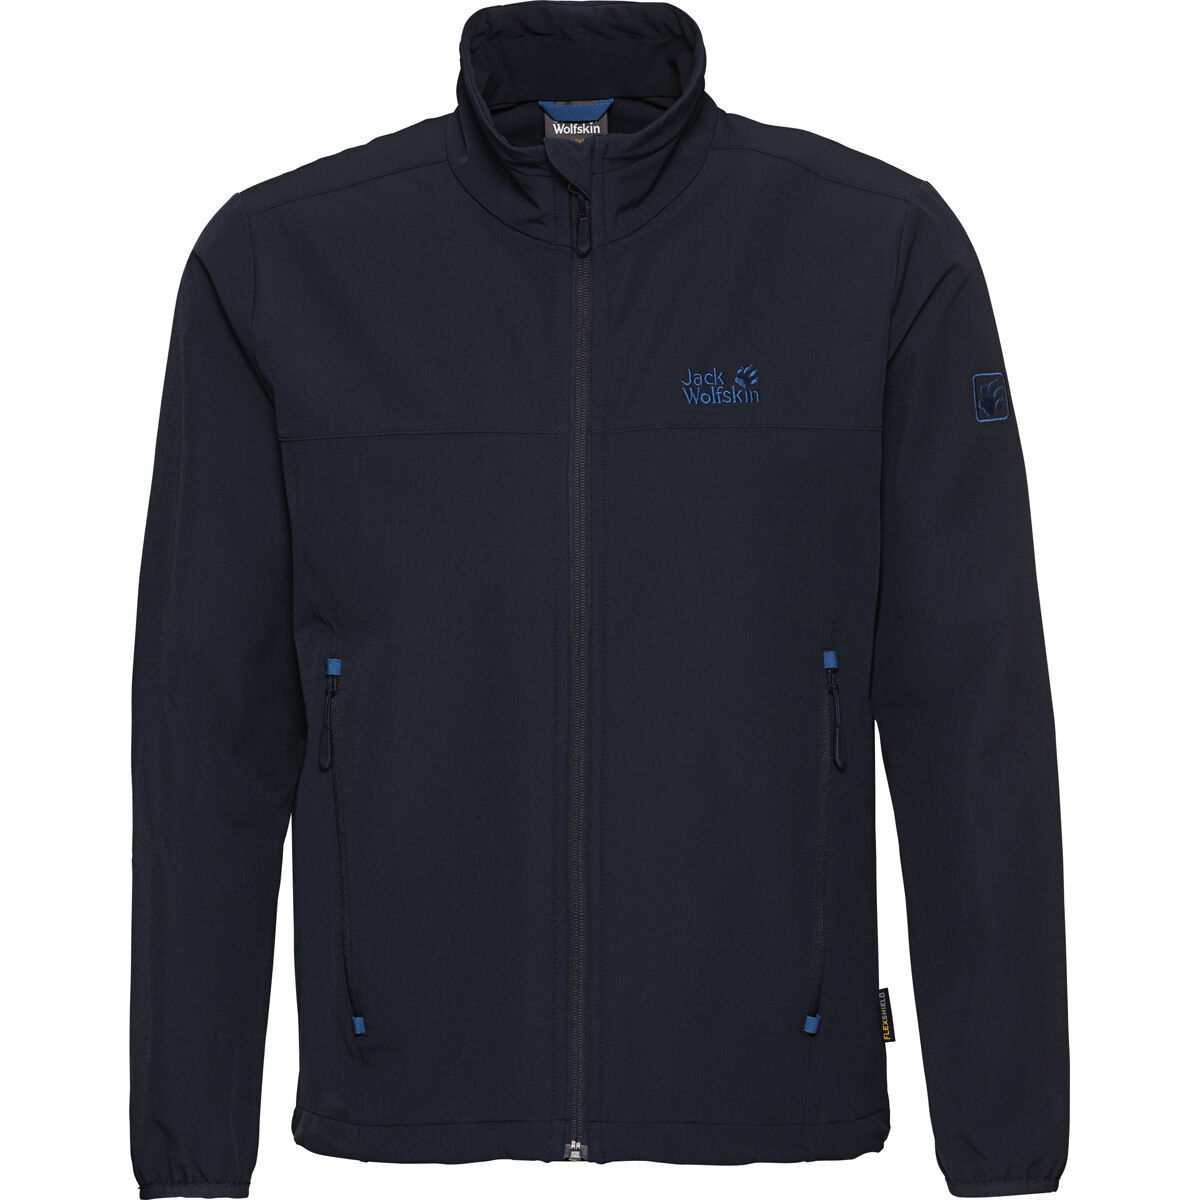 new product 508fe 00623 Herren Softshelljacke Crestview, navy, S